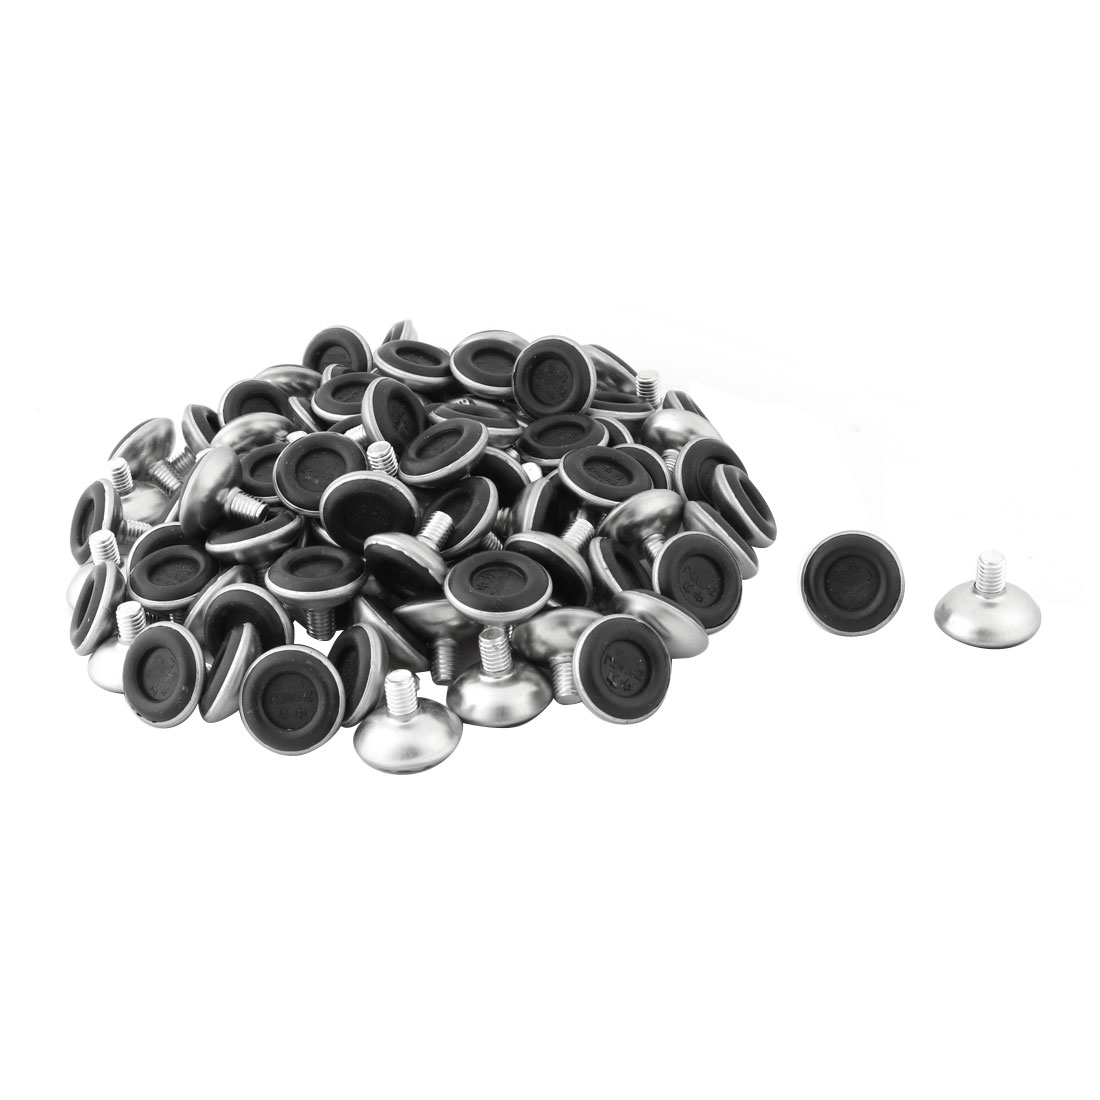 Home Office Plastic Base Round Chair Table Leg Tube Insert Leveling Foot 100pcs